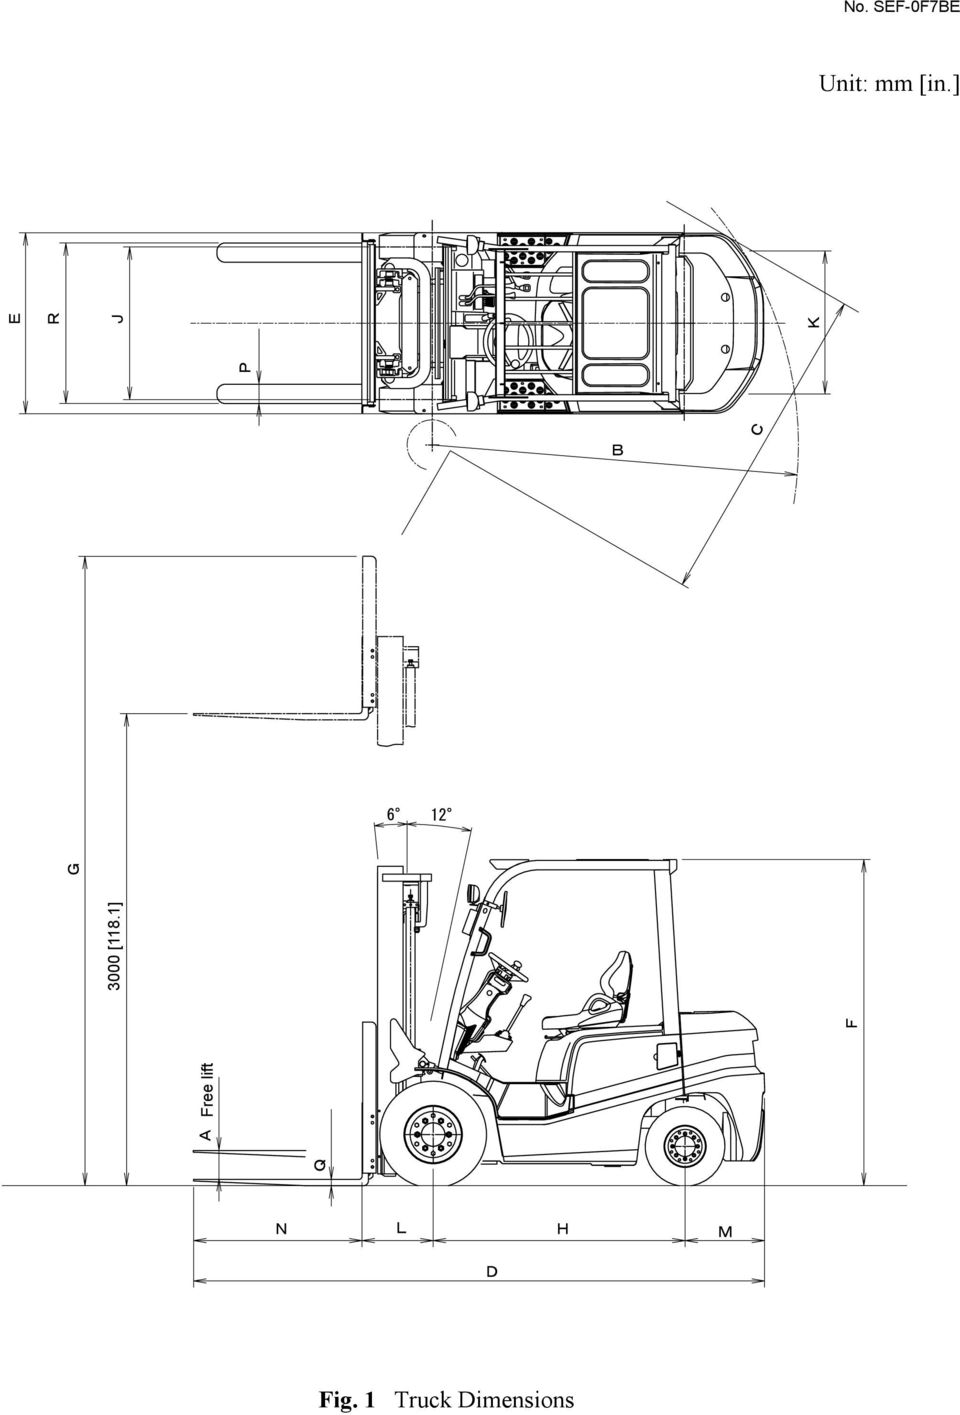 Service Manual Forklift Truck Tcm Corporation Fhd18t3 Fhg18t3 Turn Signal Wiring Diagram Free Lift 3000